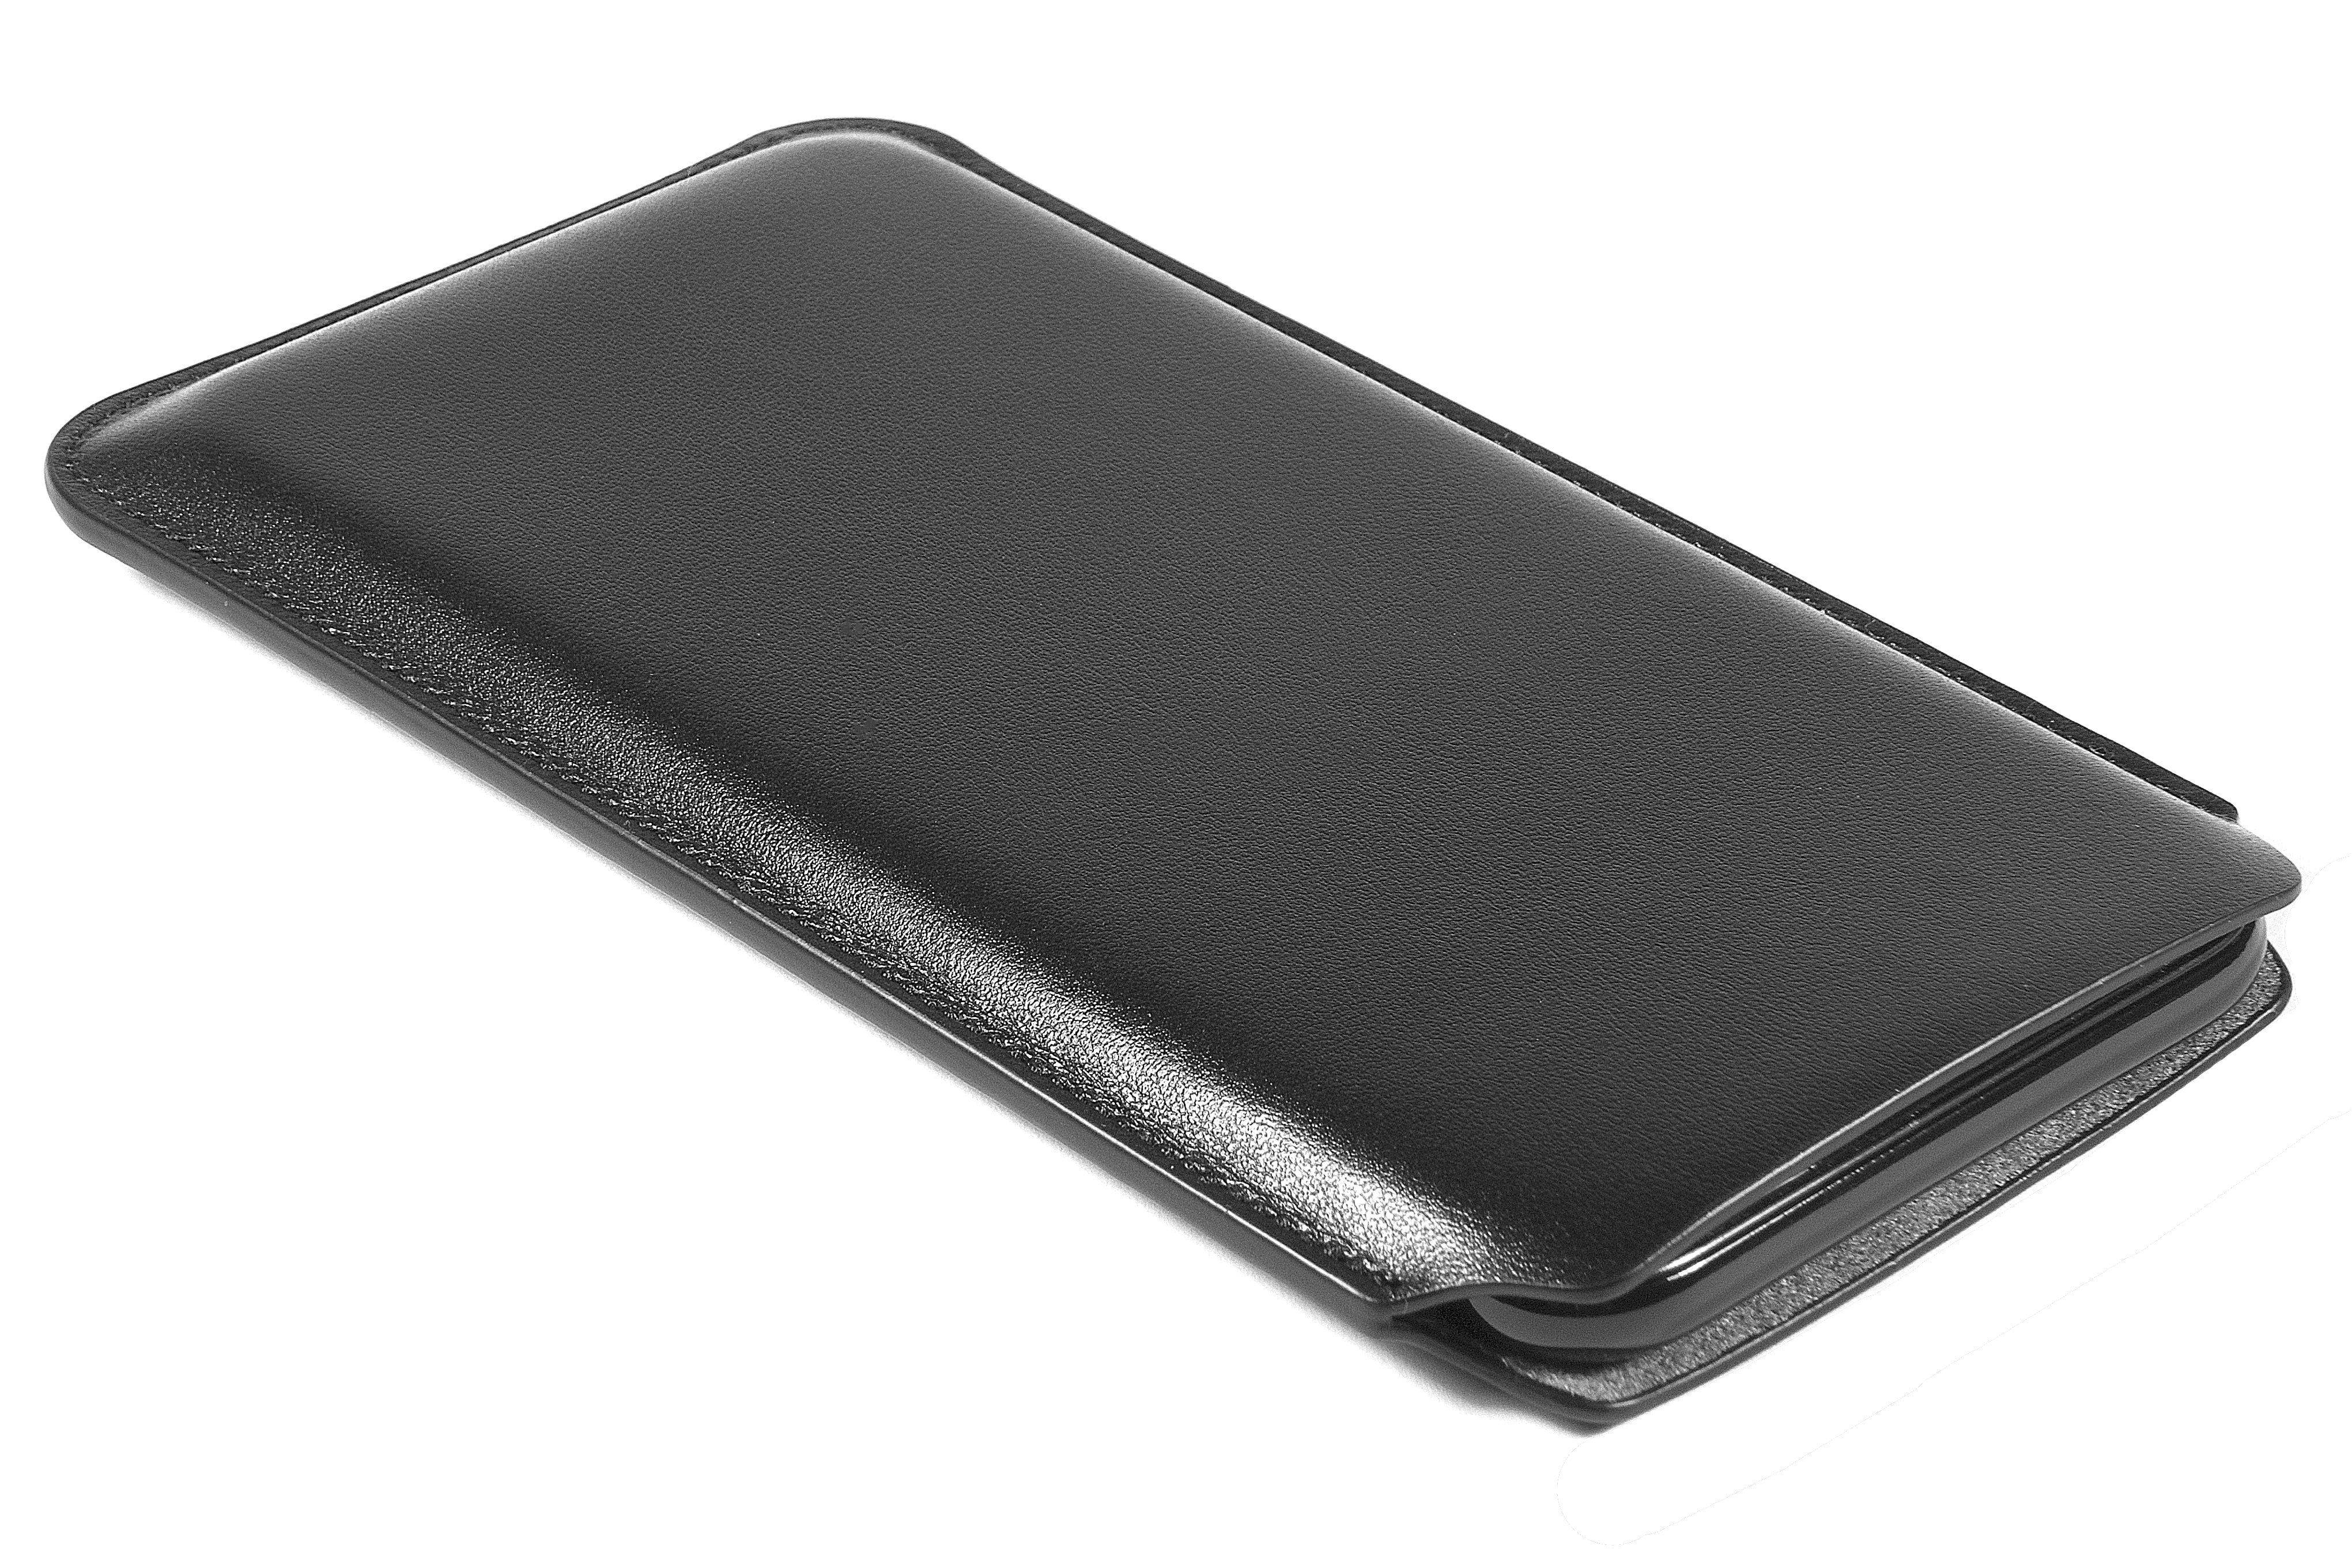 newest b3554 8174c iPhone X / XS Leather Case Pouch - Skinny Fit - Black